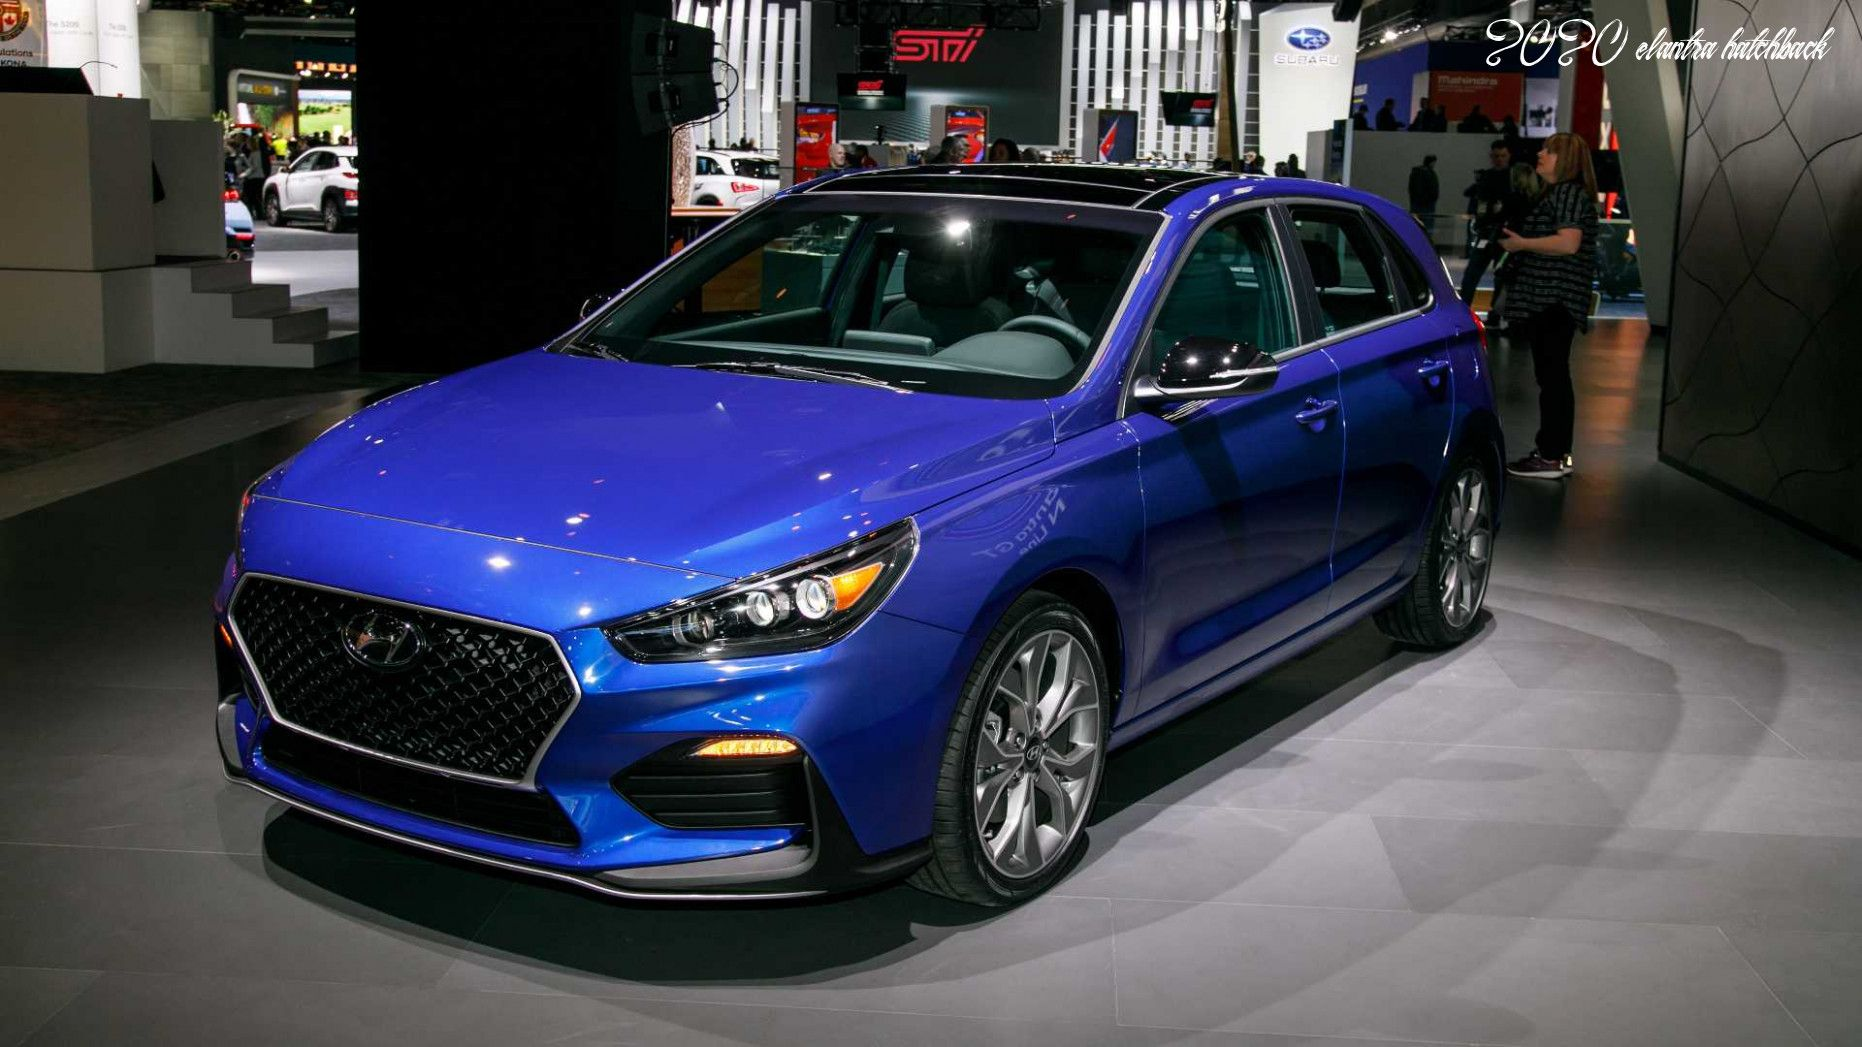 2020 Elantra Hatchback Ratings in 2020 Hyundai elantra